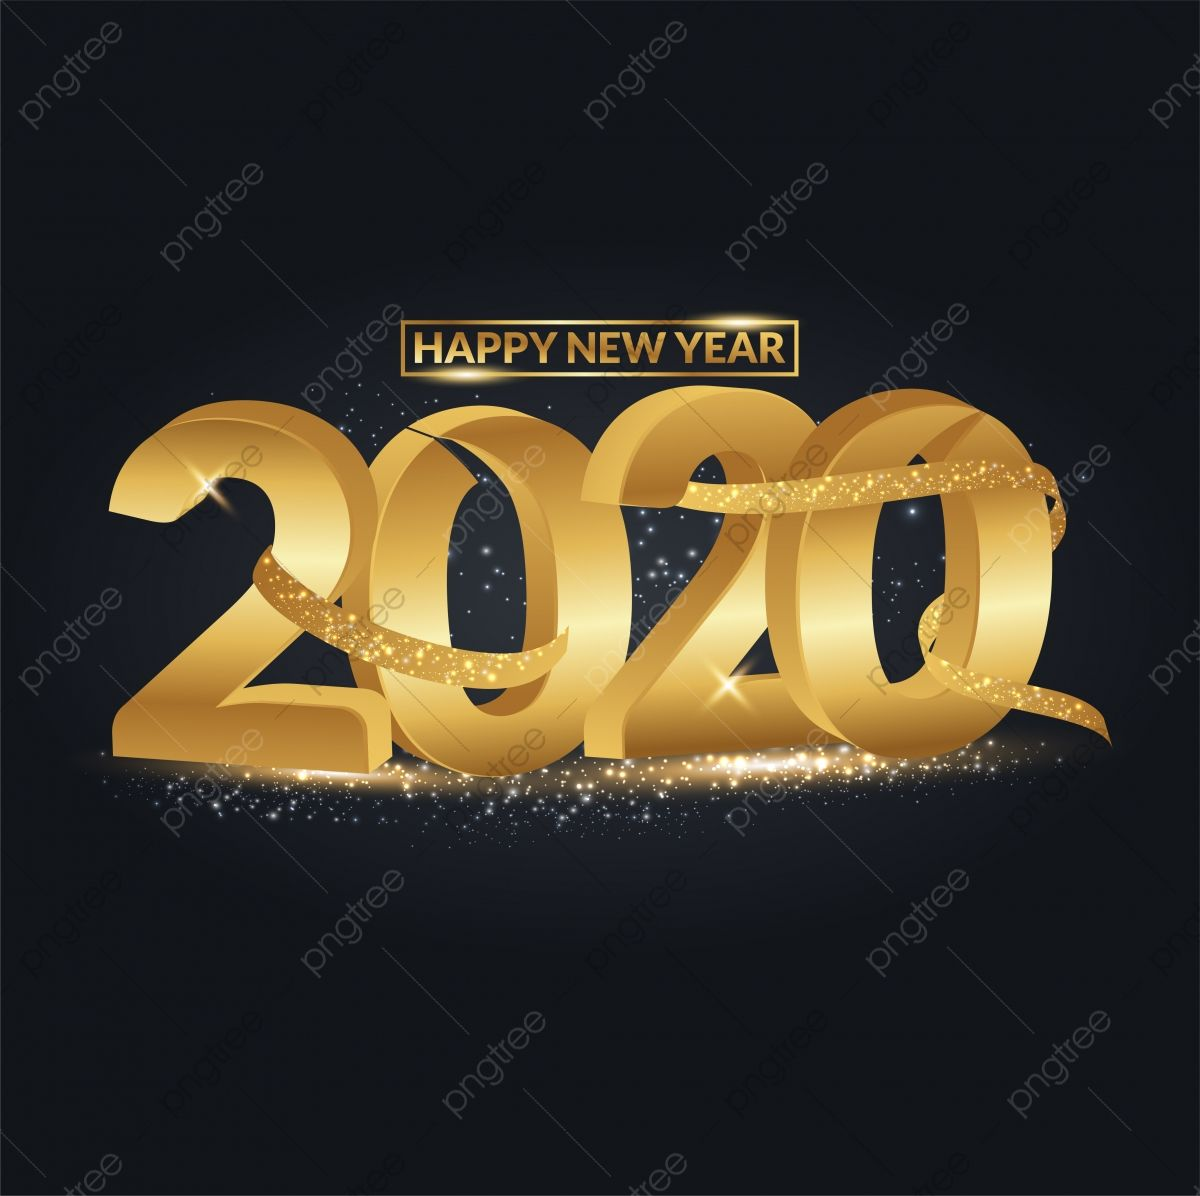 Shimmering Golden Welcome 2020 Transaprent Png Free Image By Rawpixel Com Ningzk V Happy New Year Images Happy New Year Wallpaper Happy New Year